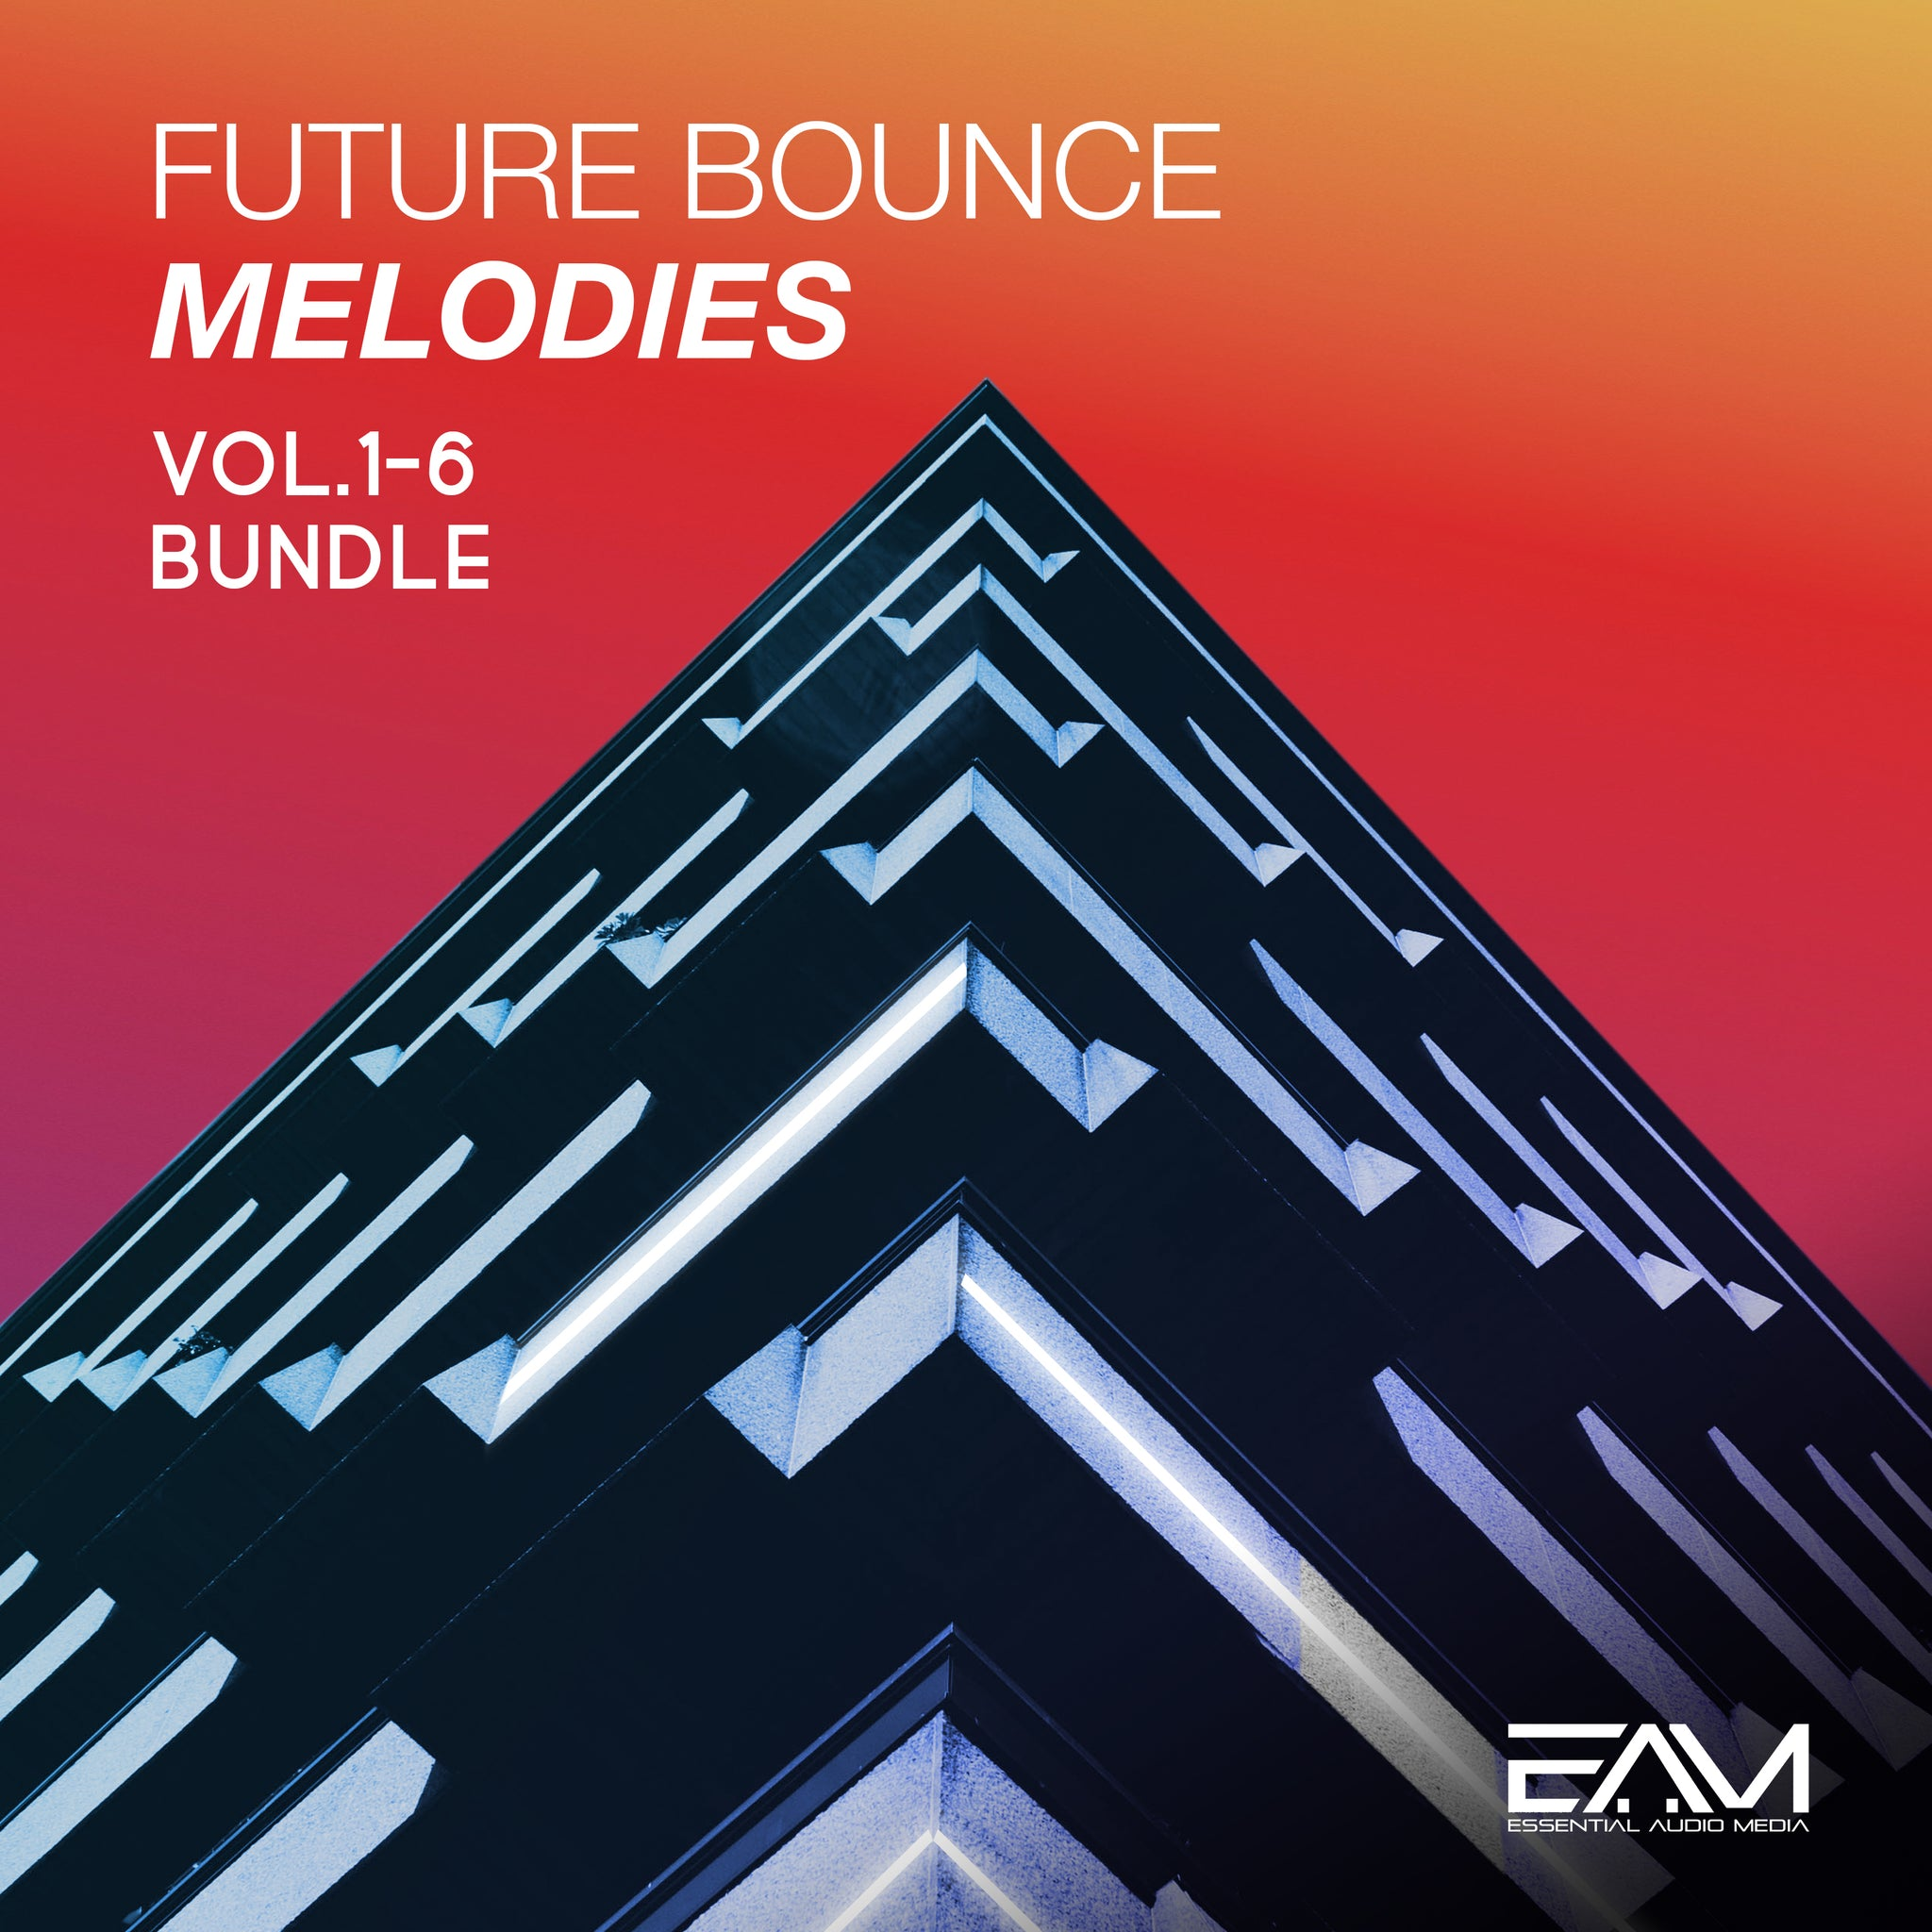 Future Bounce Melodies Vol. 1-6 Bundle